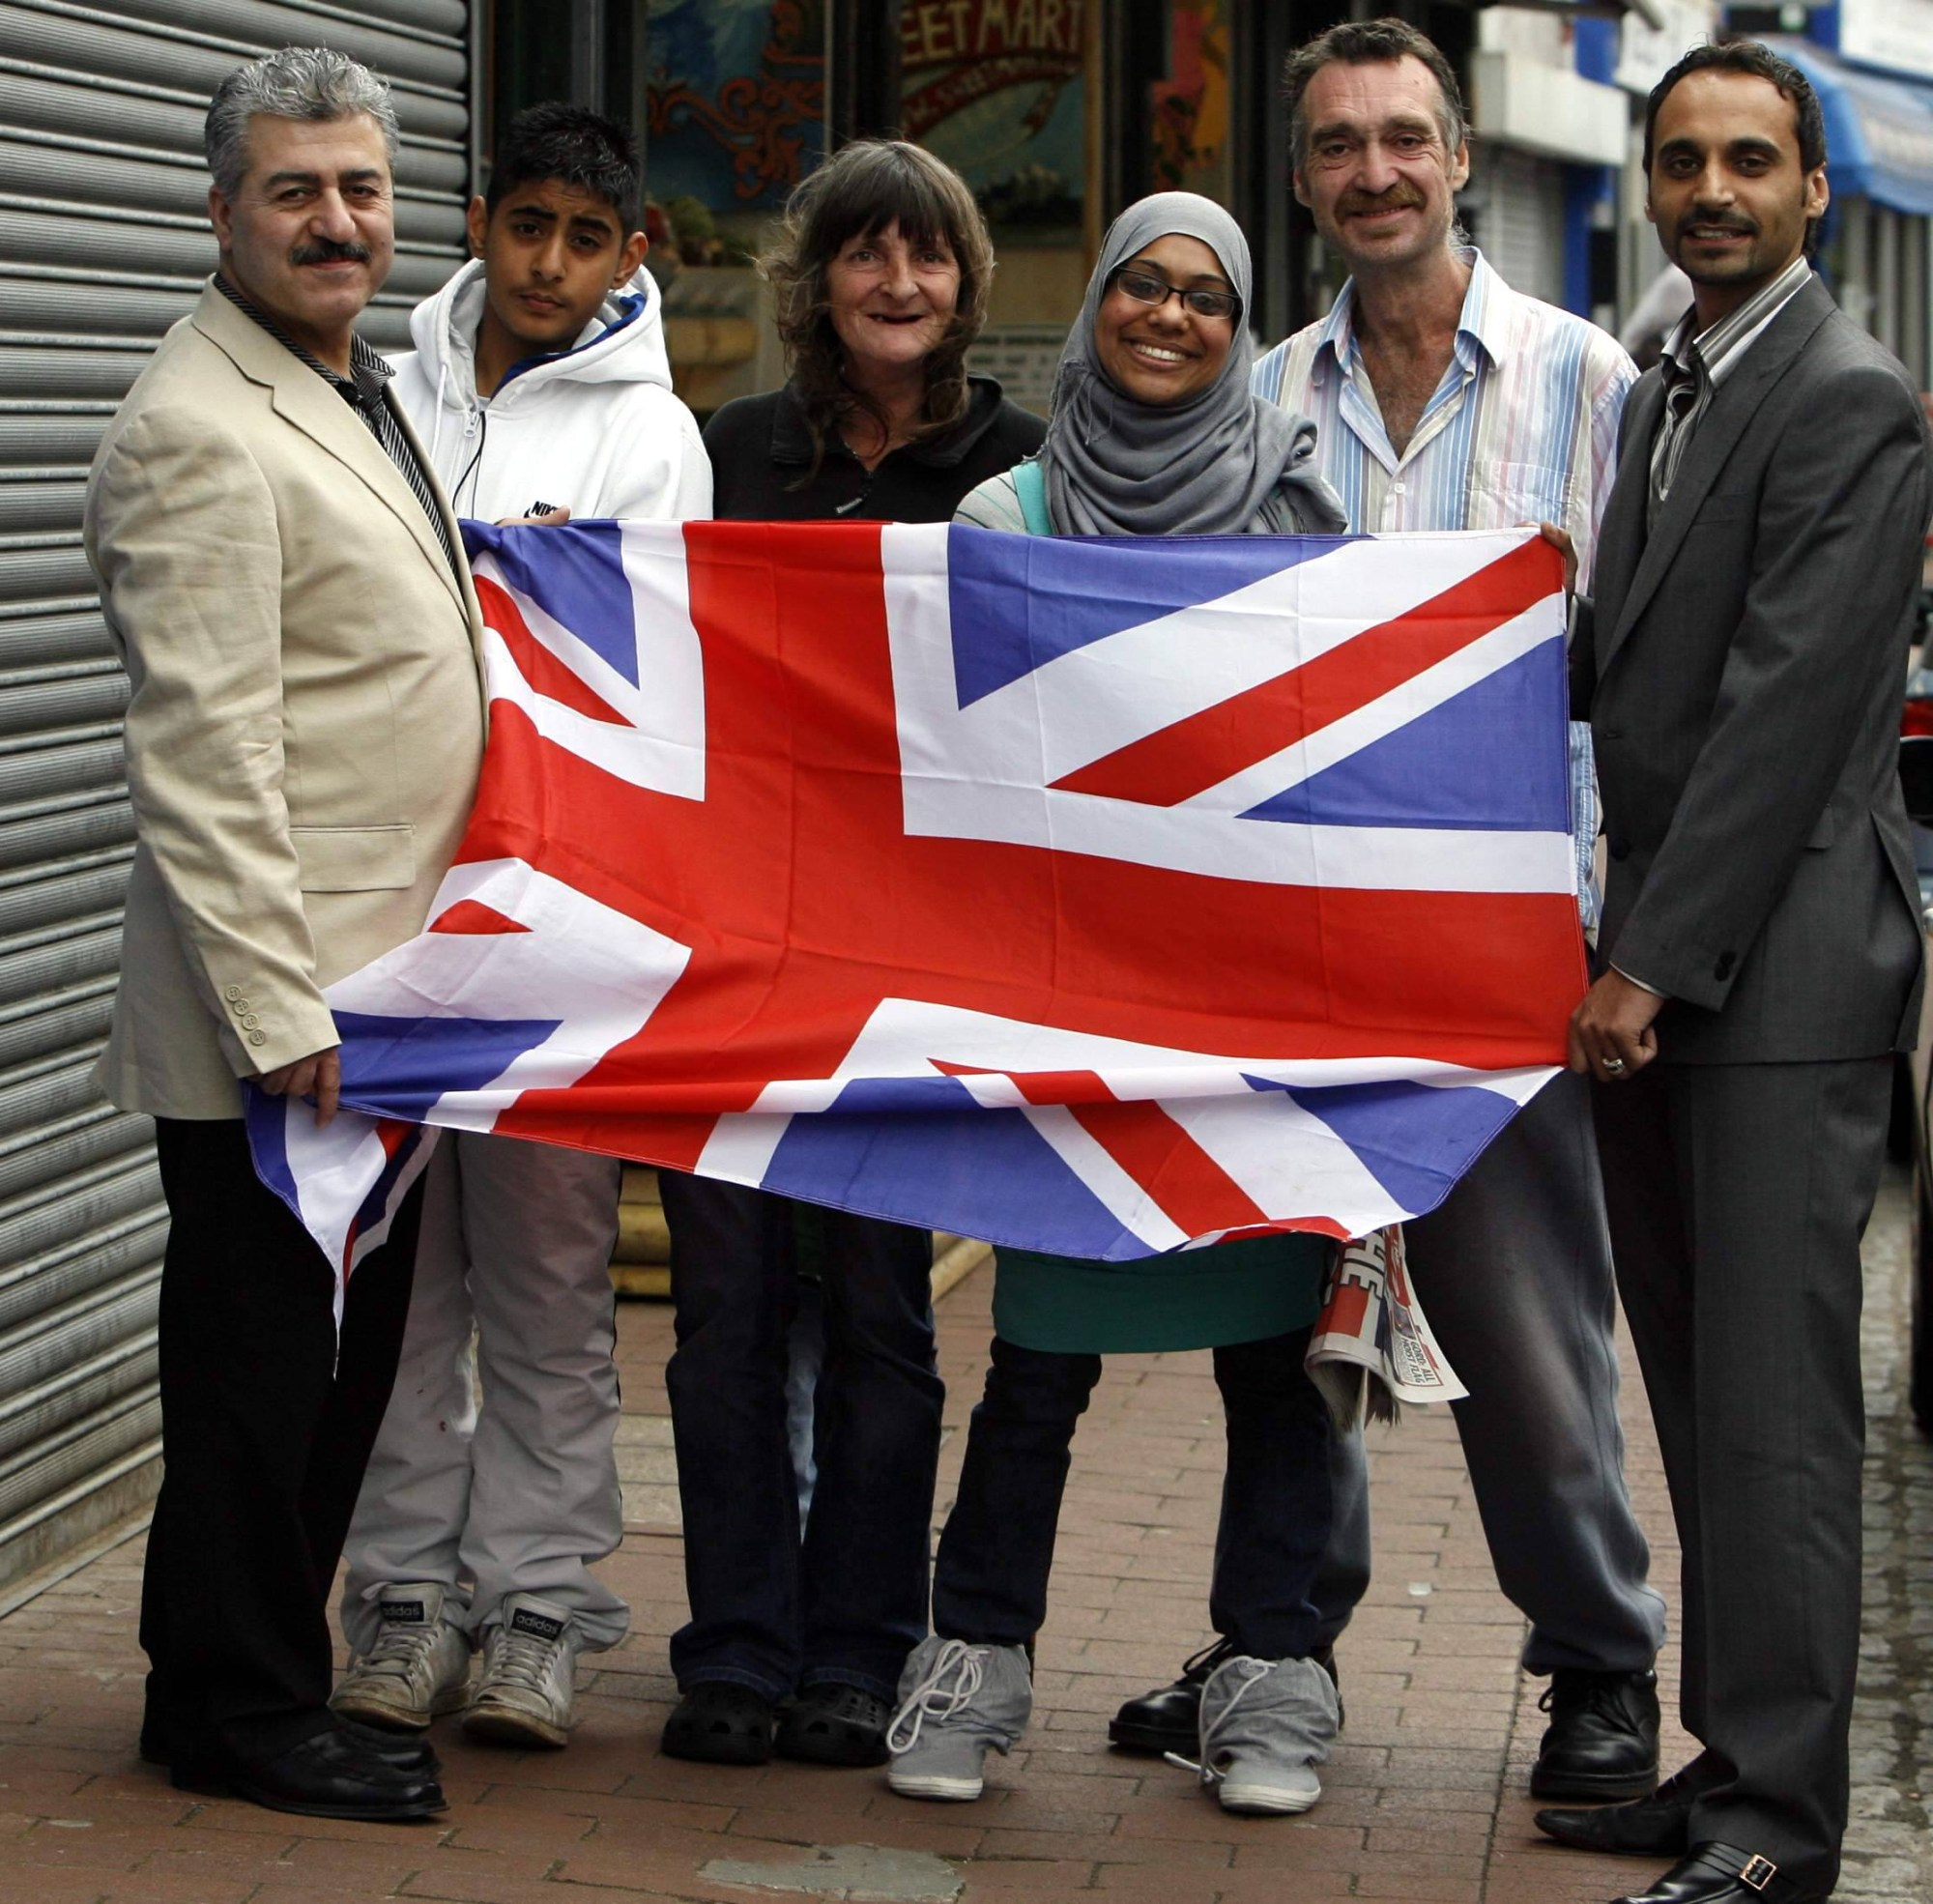 Press Release from British Muslim Heritage Centre: Engaging British Muslims with the Census